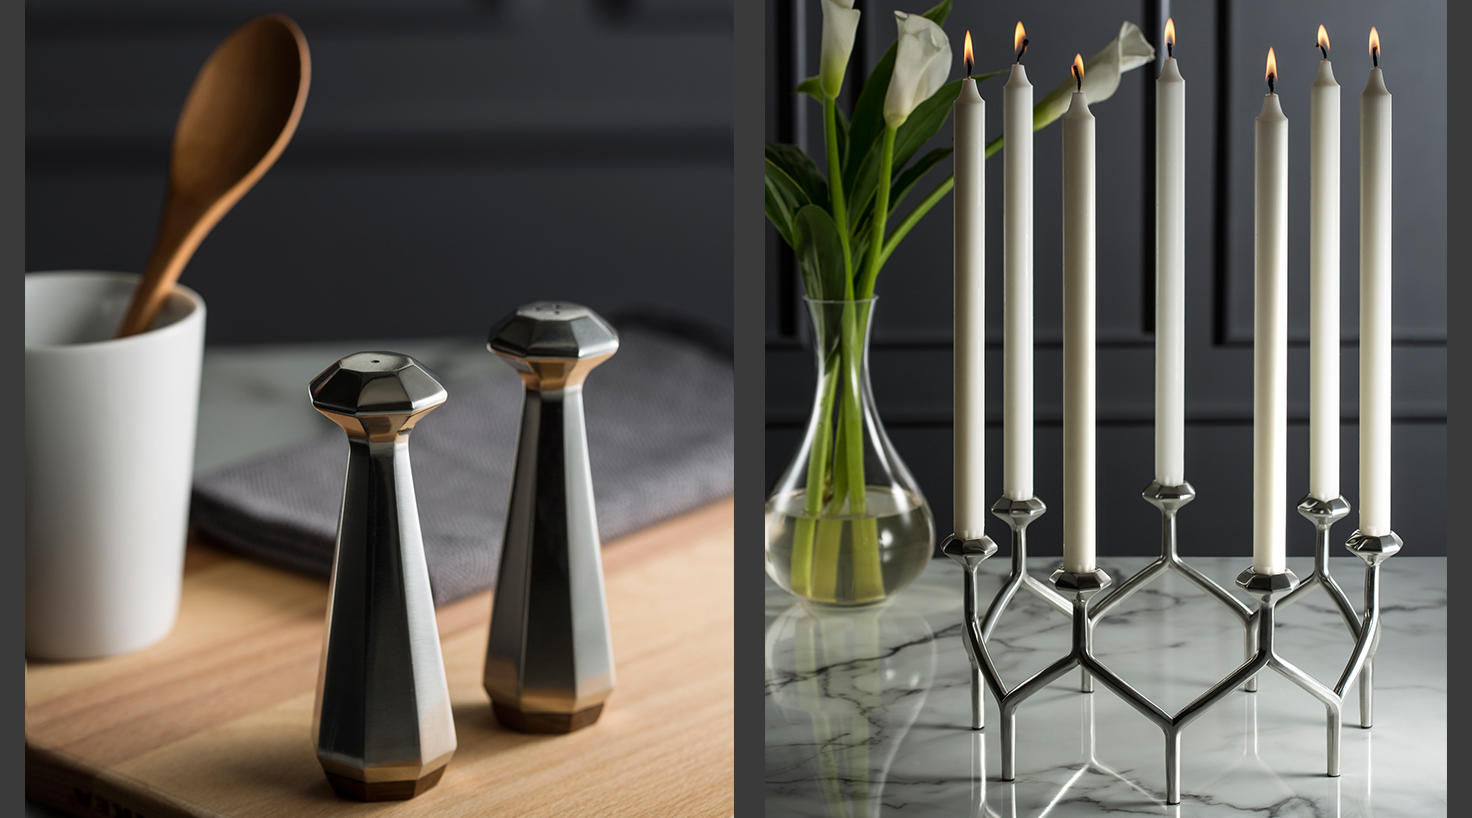 Salt and Pepper and candle holder.jpg